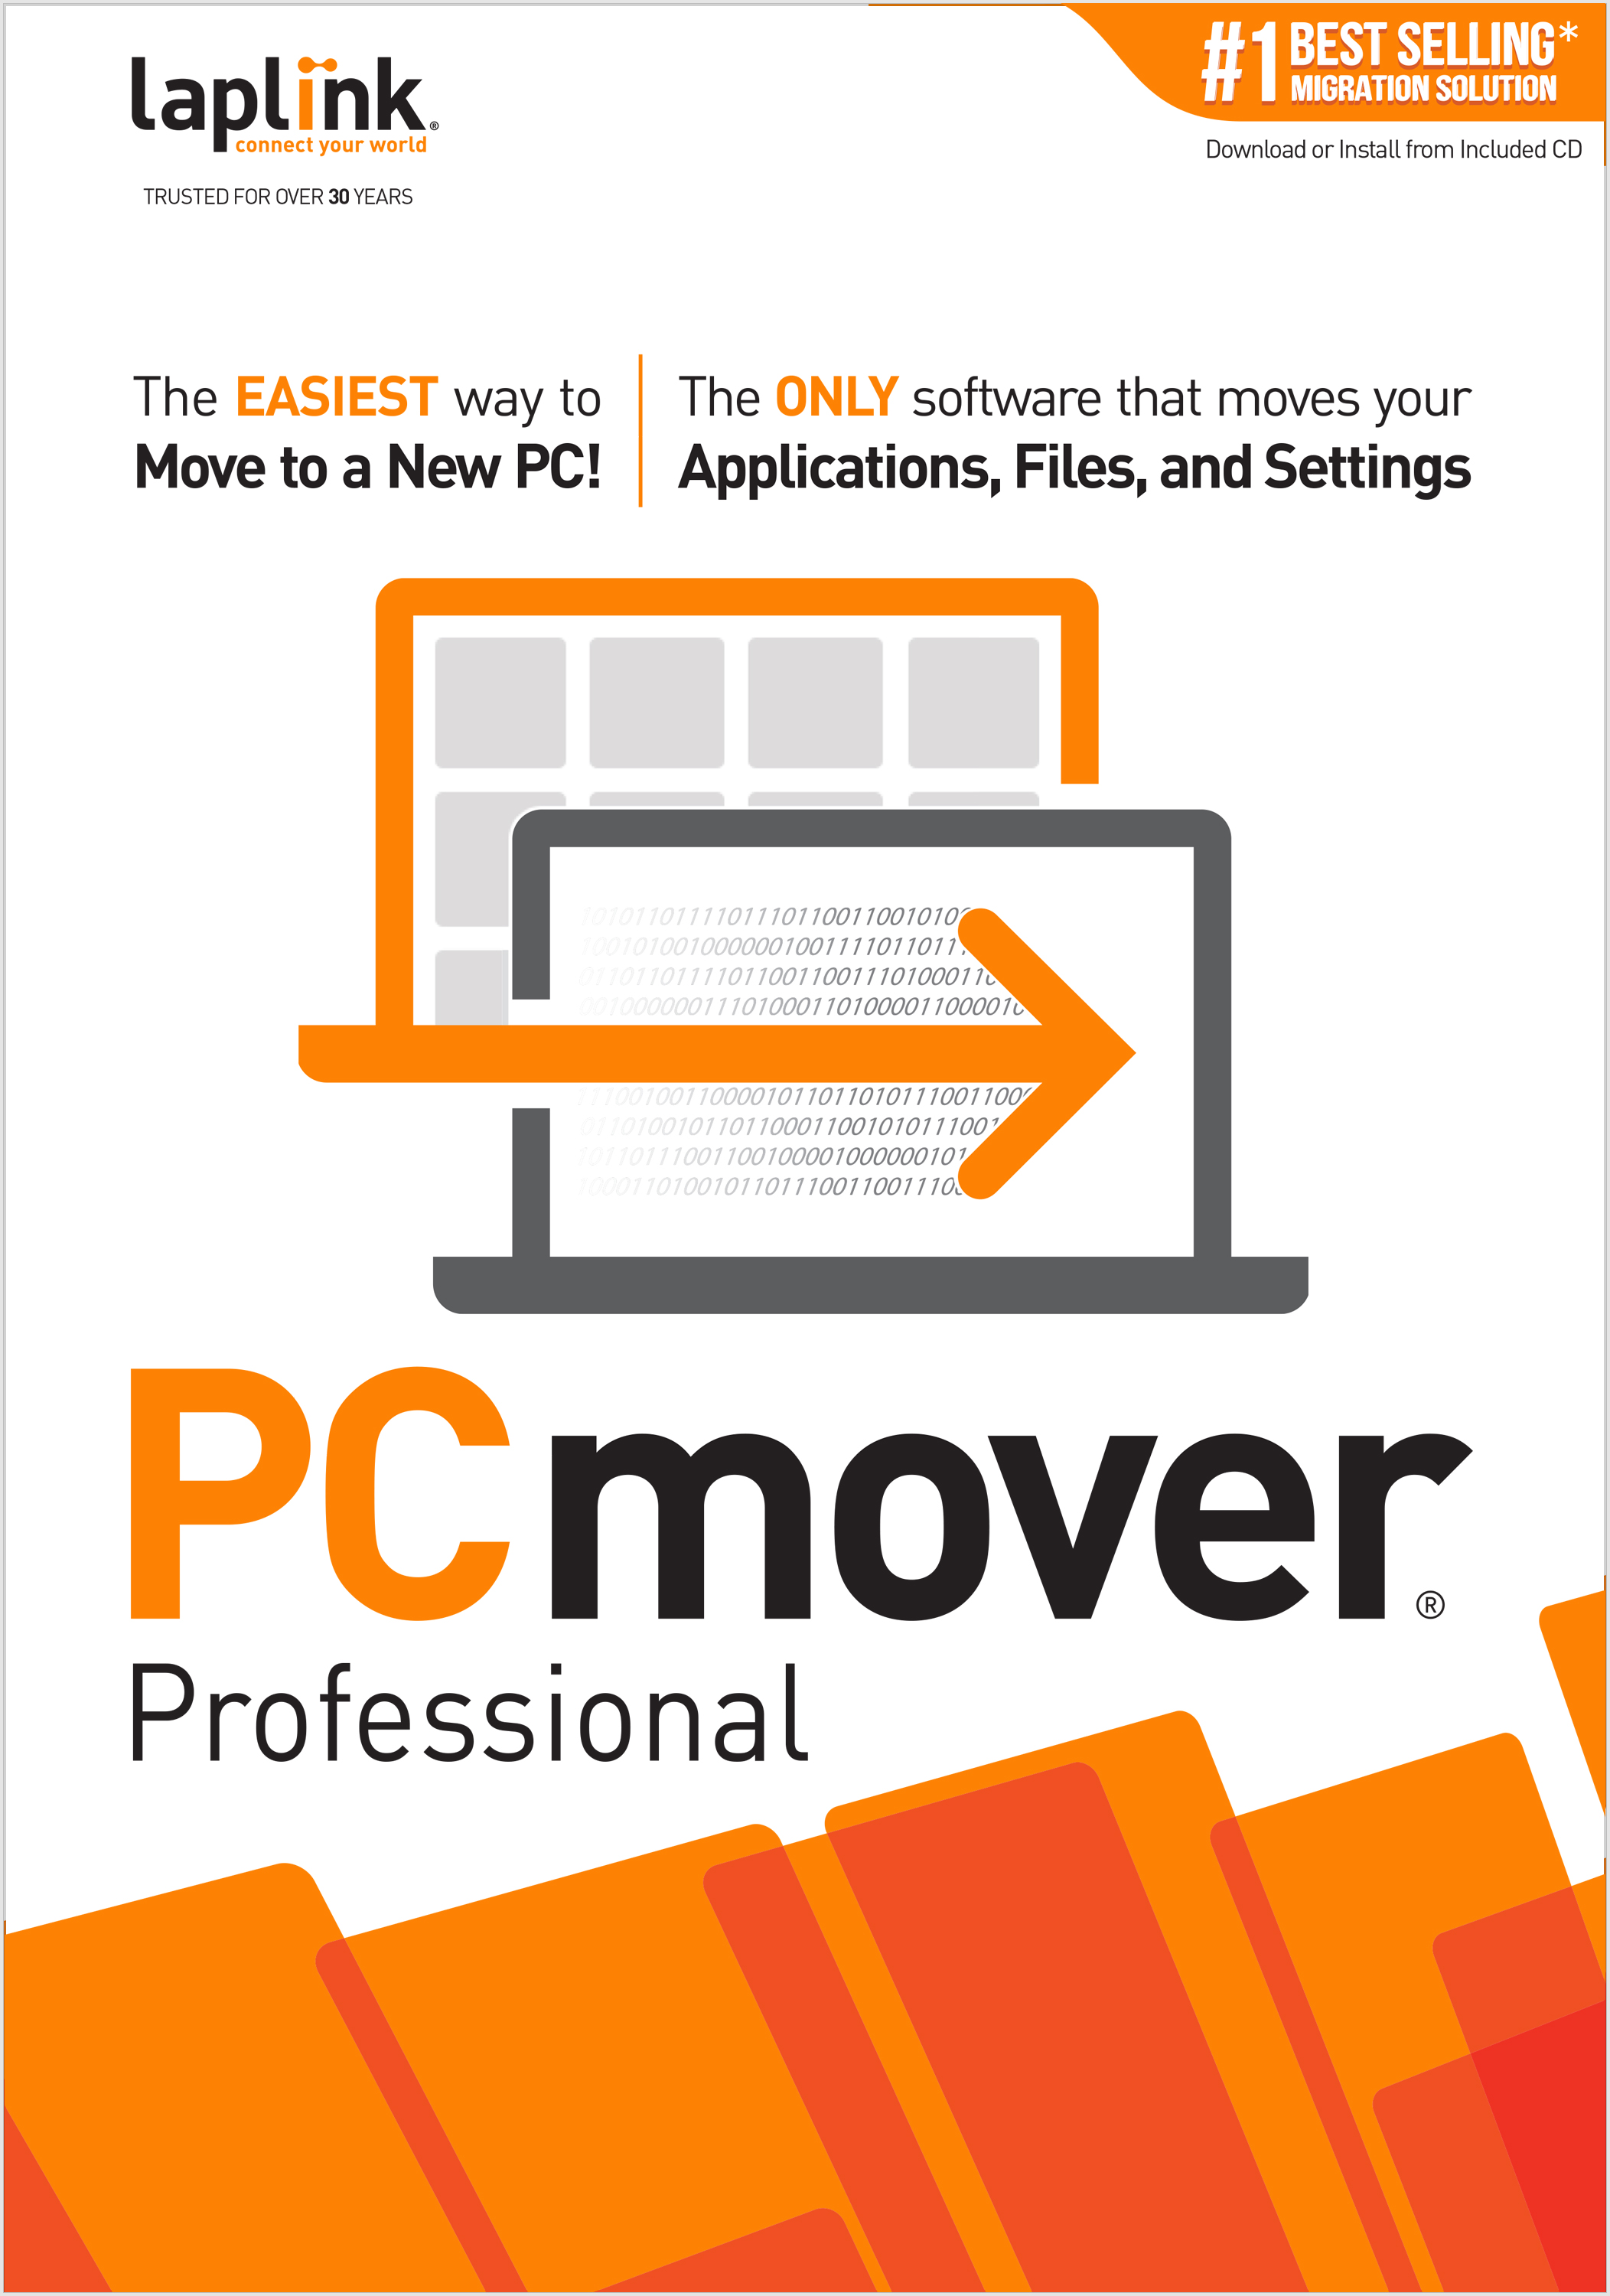 PCmover Professional 11  (2 Use) - The easiest way to move to a new PC! [Download] by Laplink Software, Inc